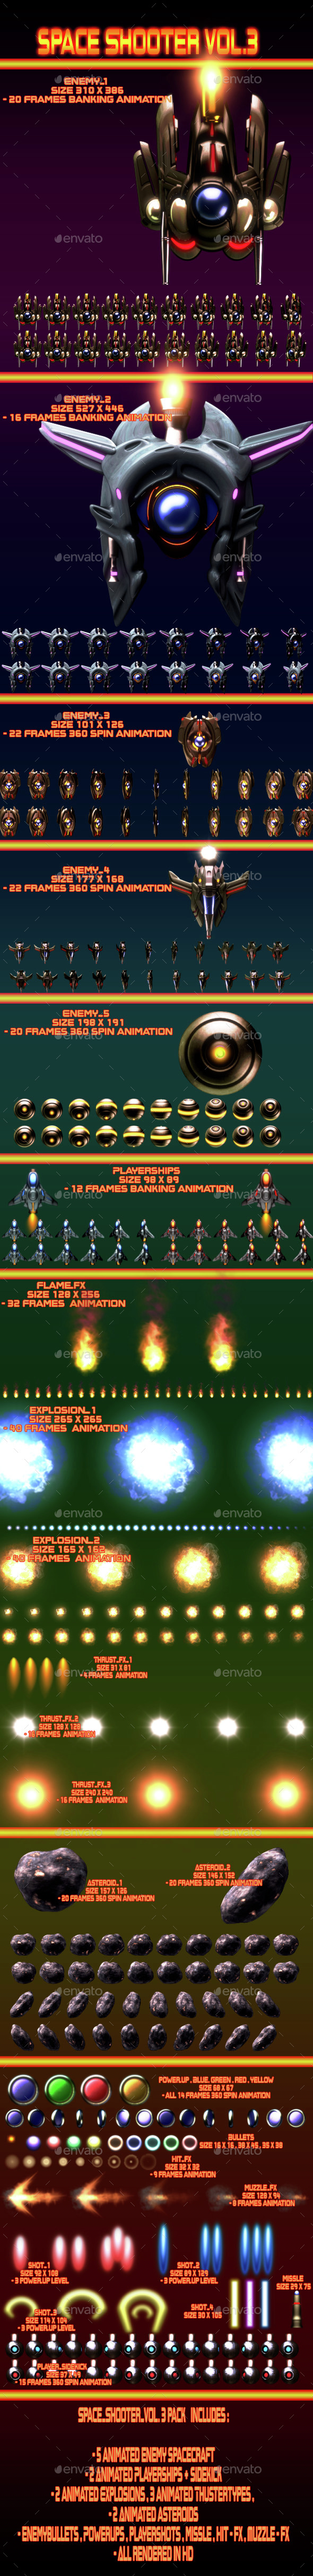 Space Shooter Vol.3 - Sprites Game Assets